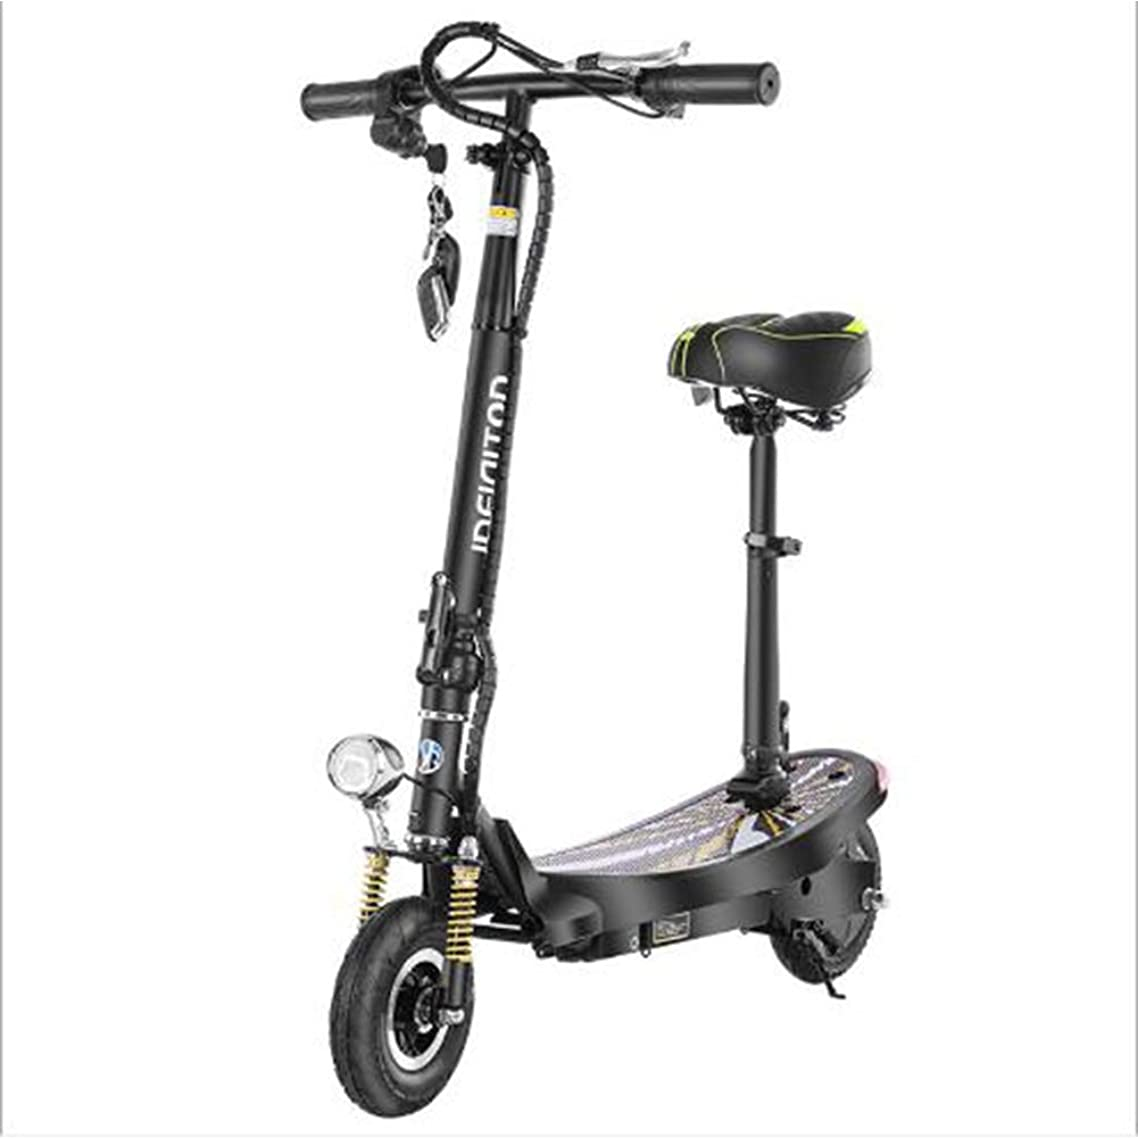 Small Folding Electric Scooter, Rechargeable Lithium Battery Brushless Powerful Motor Long Mileage Remote Control Off-Road Electric Bicycle for Adult,Black,30km